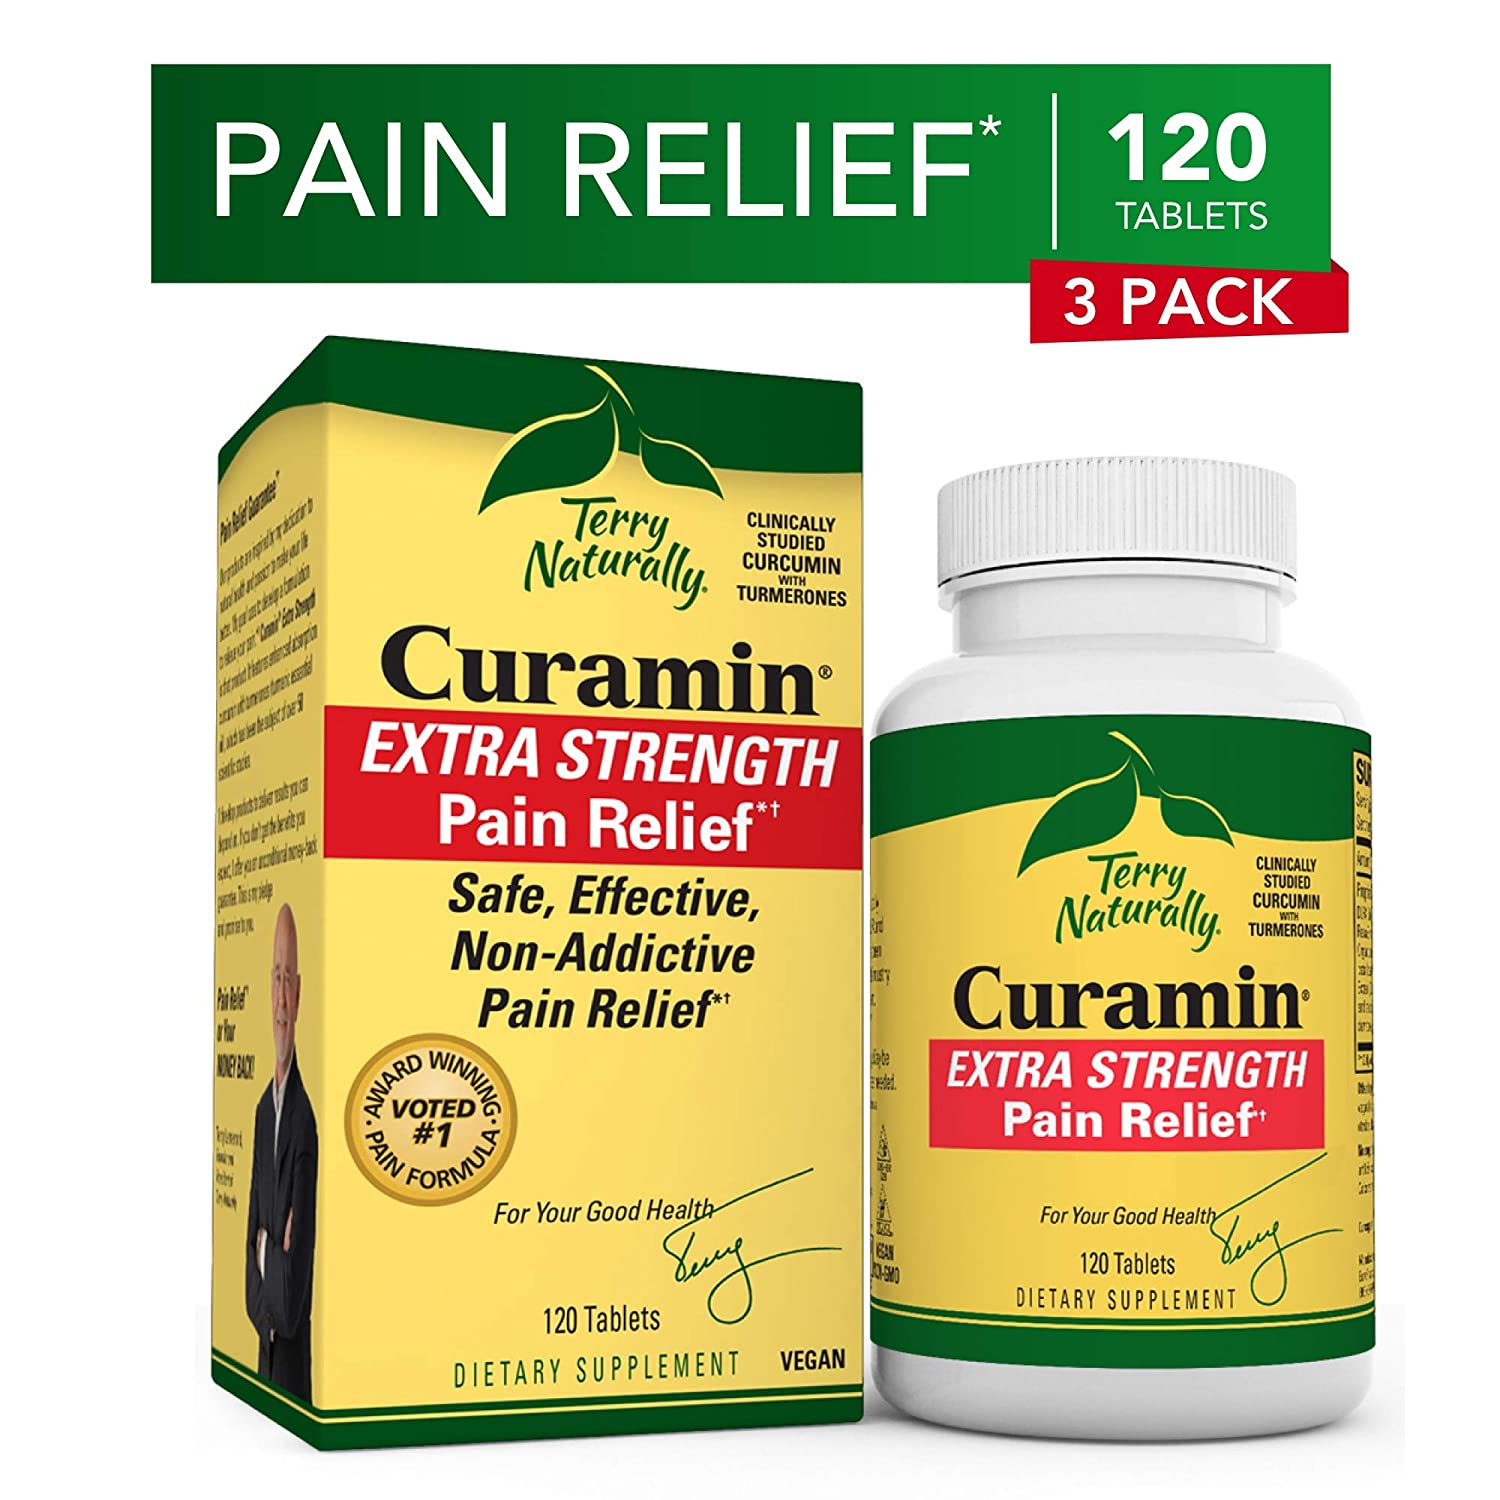 Terry Naturally Curamin Extra Strength 3 Pack – 120 Vegan Tablets – Non-Addictive Pain Relief Supplement With Curcumin, Boswellia DLPA – Non-GMO, Gluten-Free – 120 Total Servings